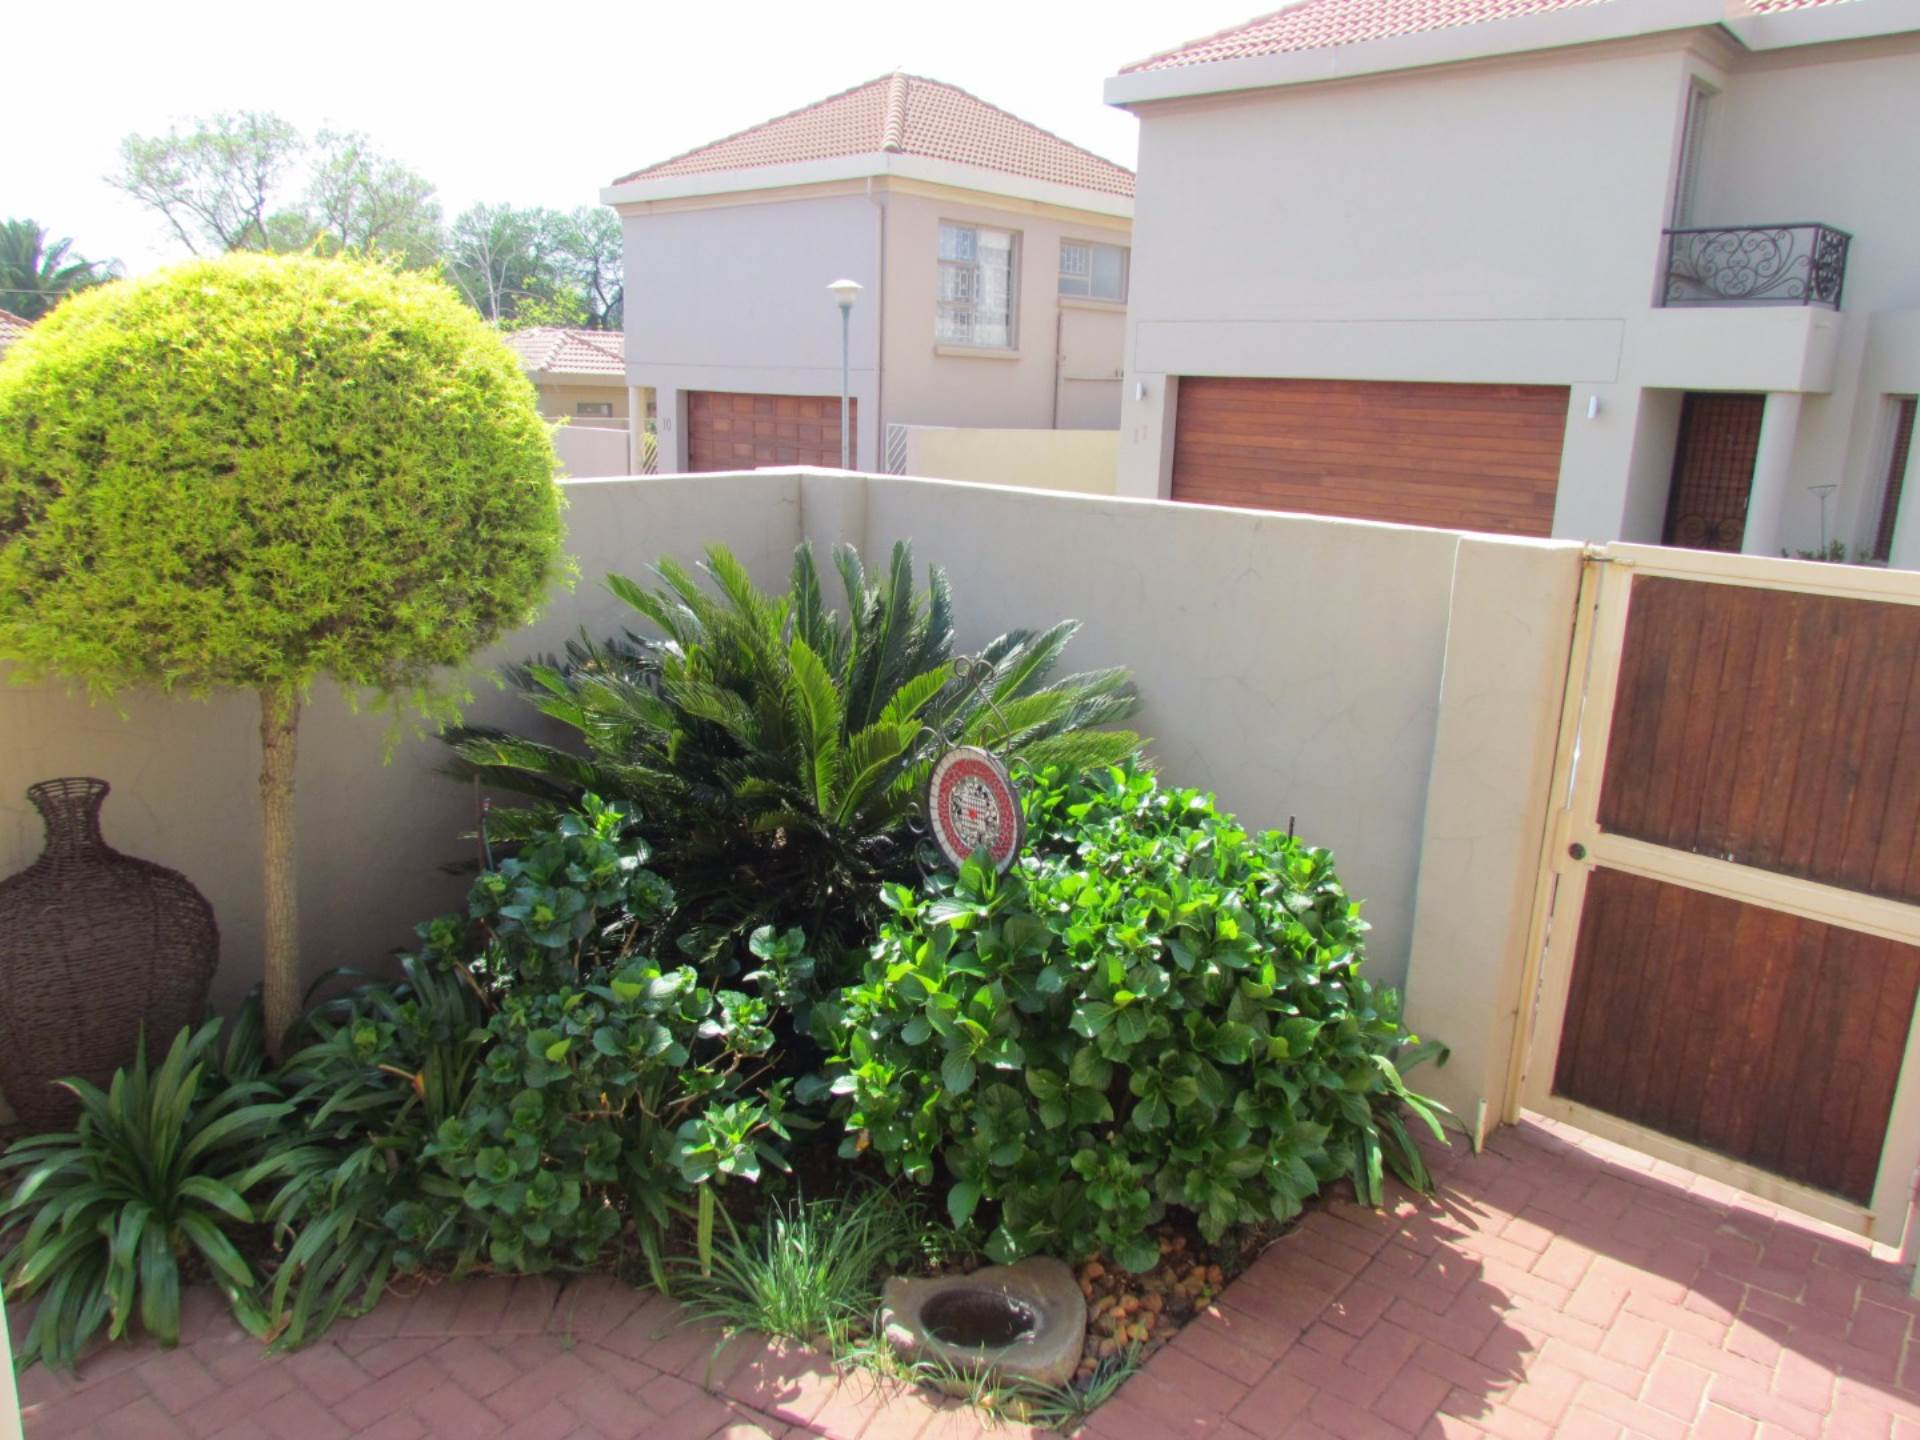 Rietvalleirand And Ext property for sale. Ref No: 13534328. Picture no 31